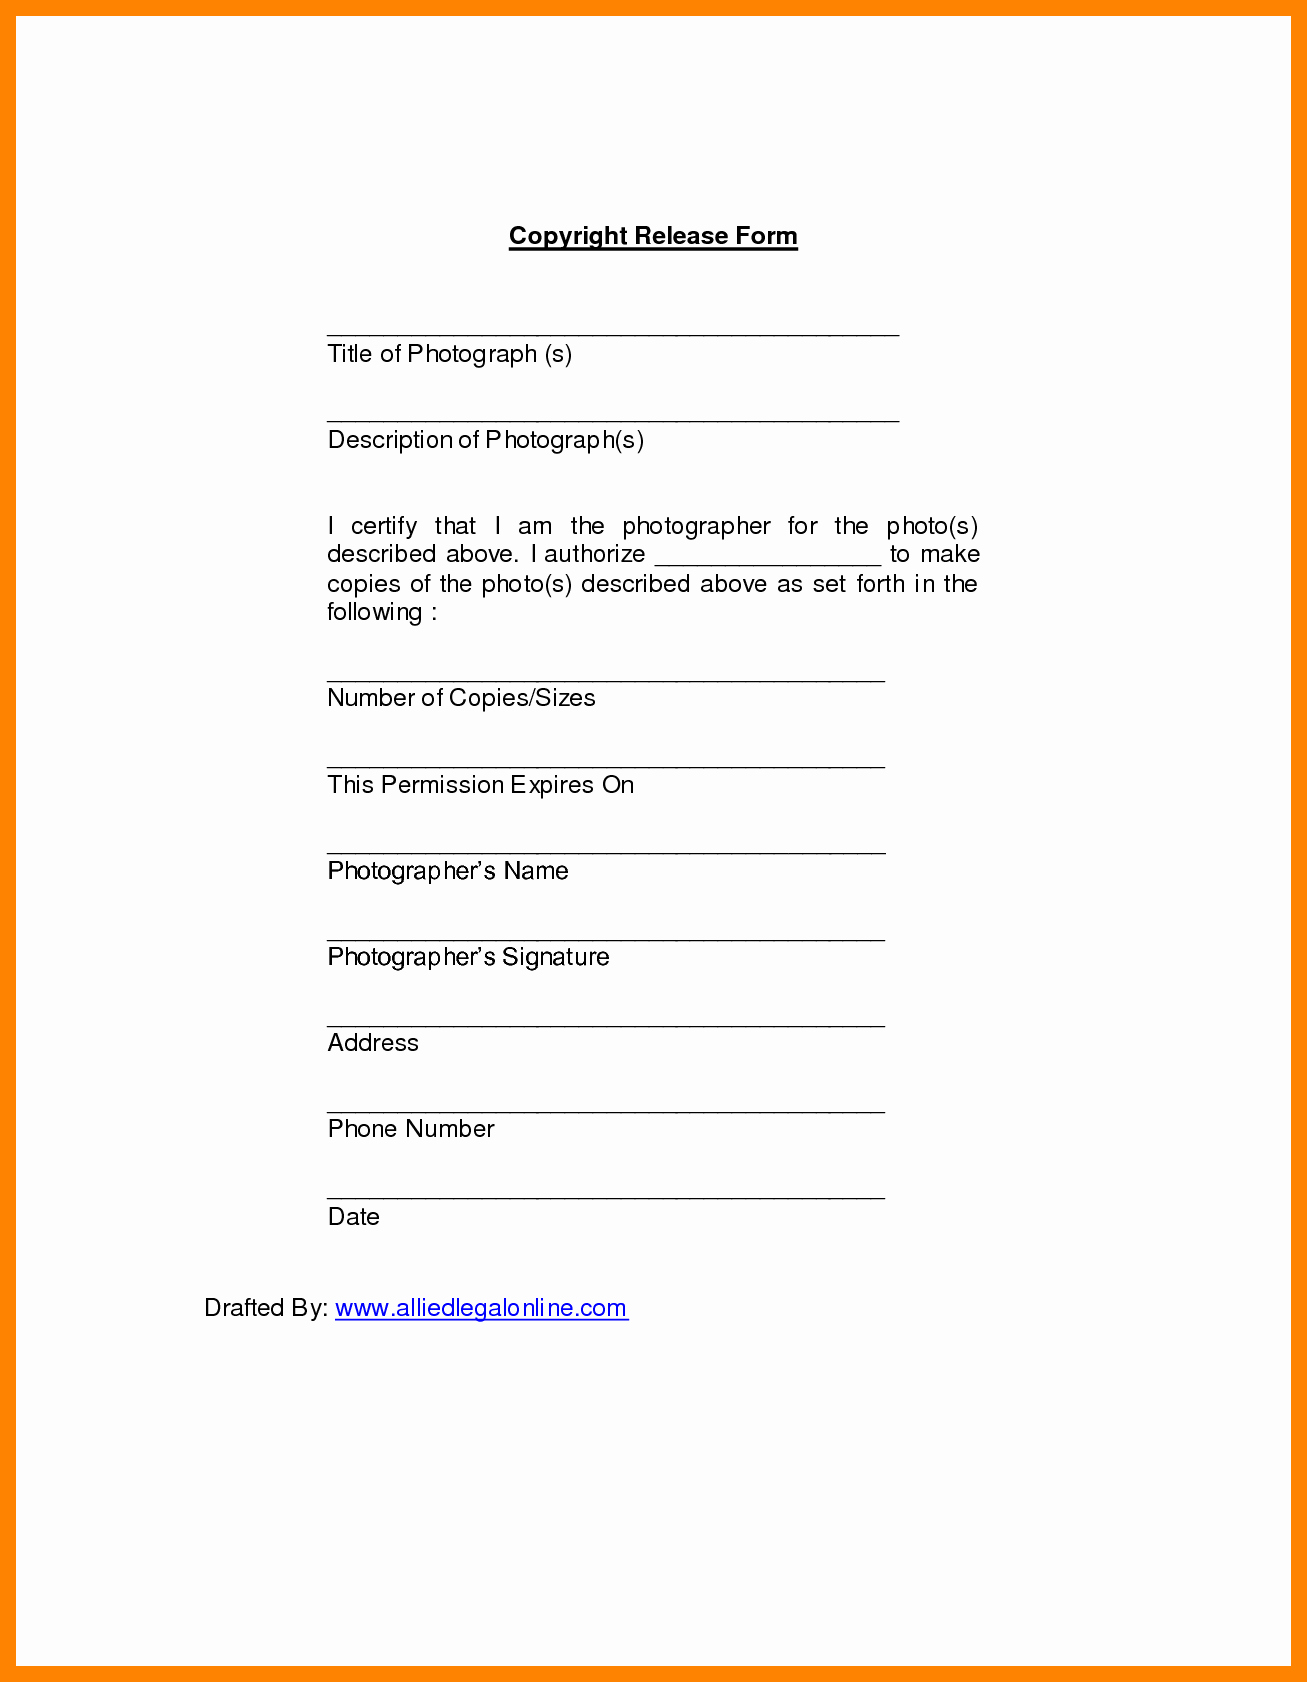 Copyright Release form Template Elegant 5 Photo Copyright Release form